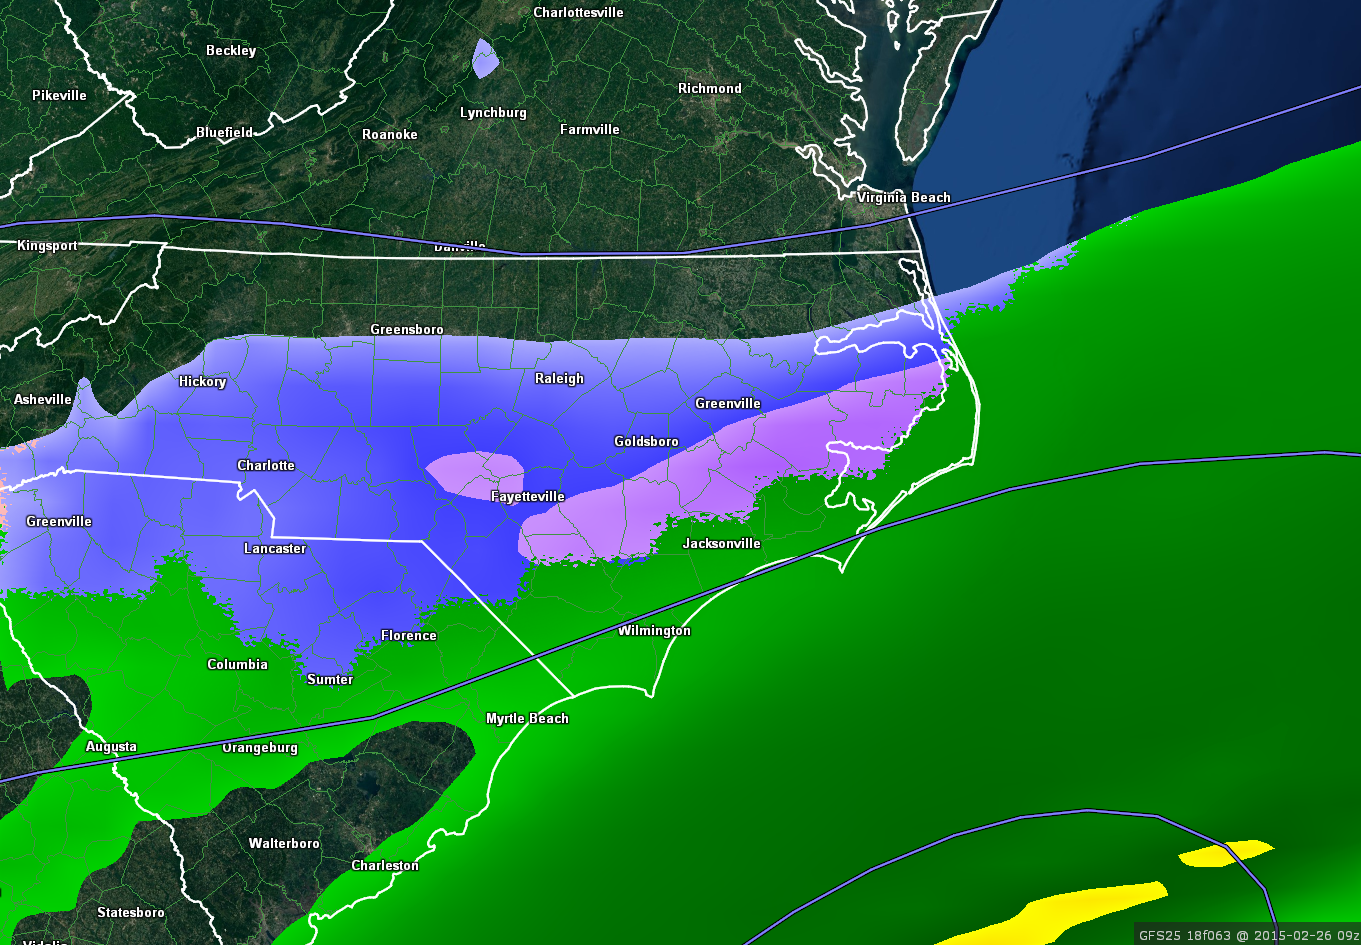 GFS forecast model precipitation type for Wednesday night.